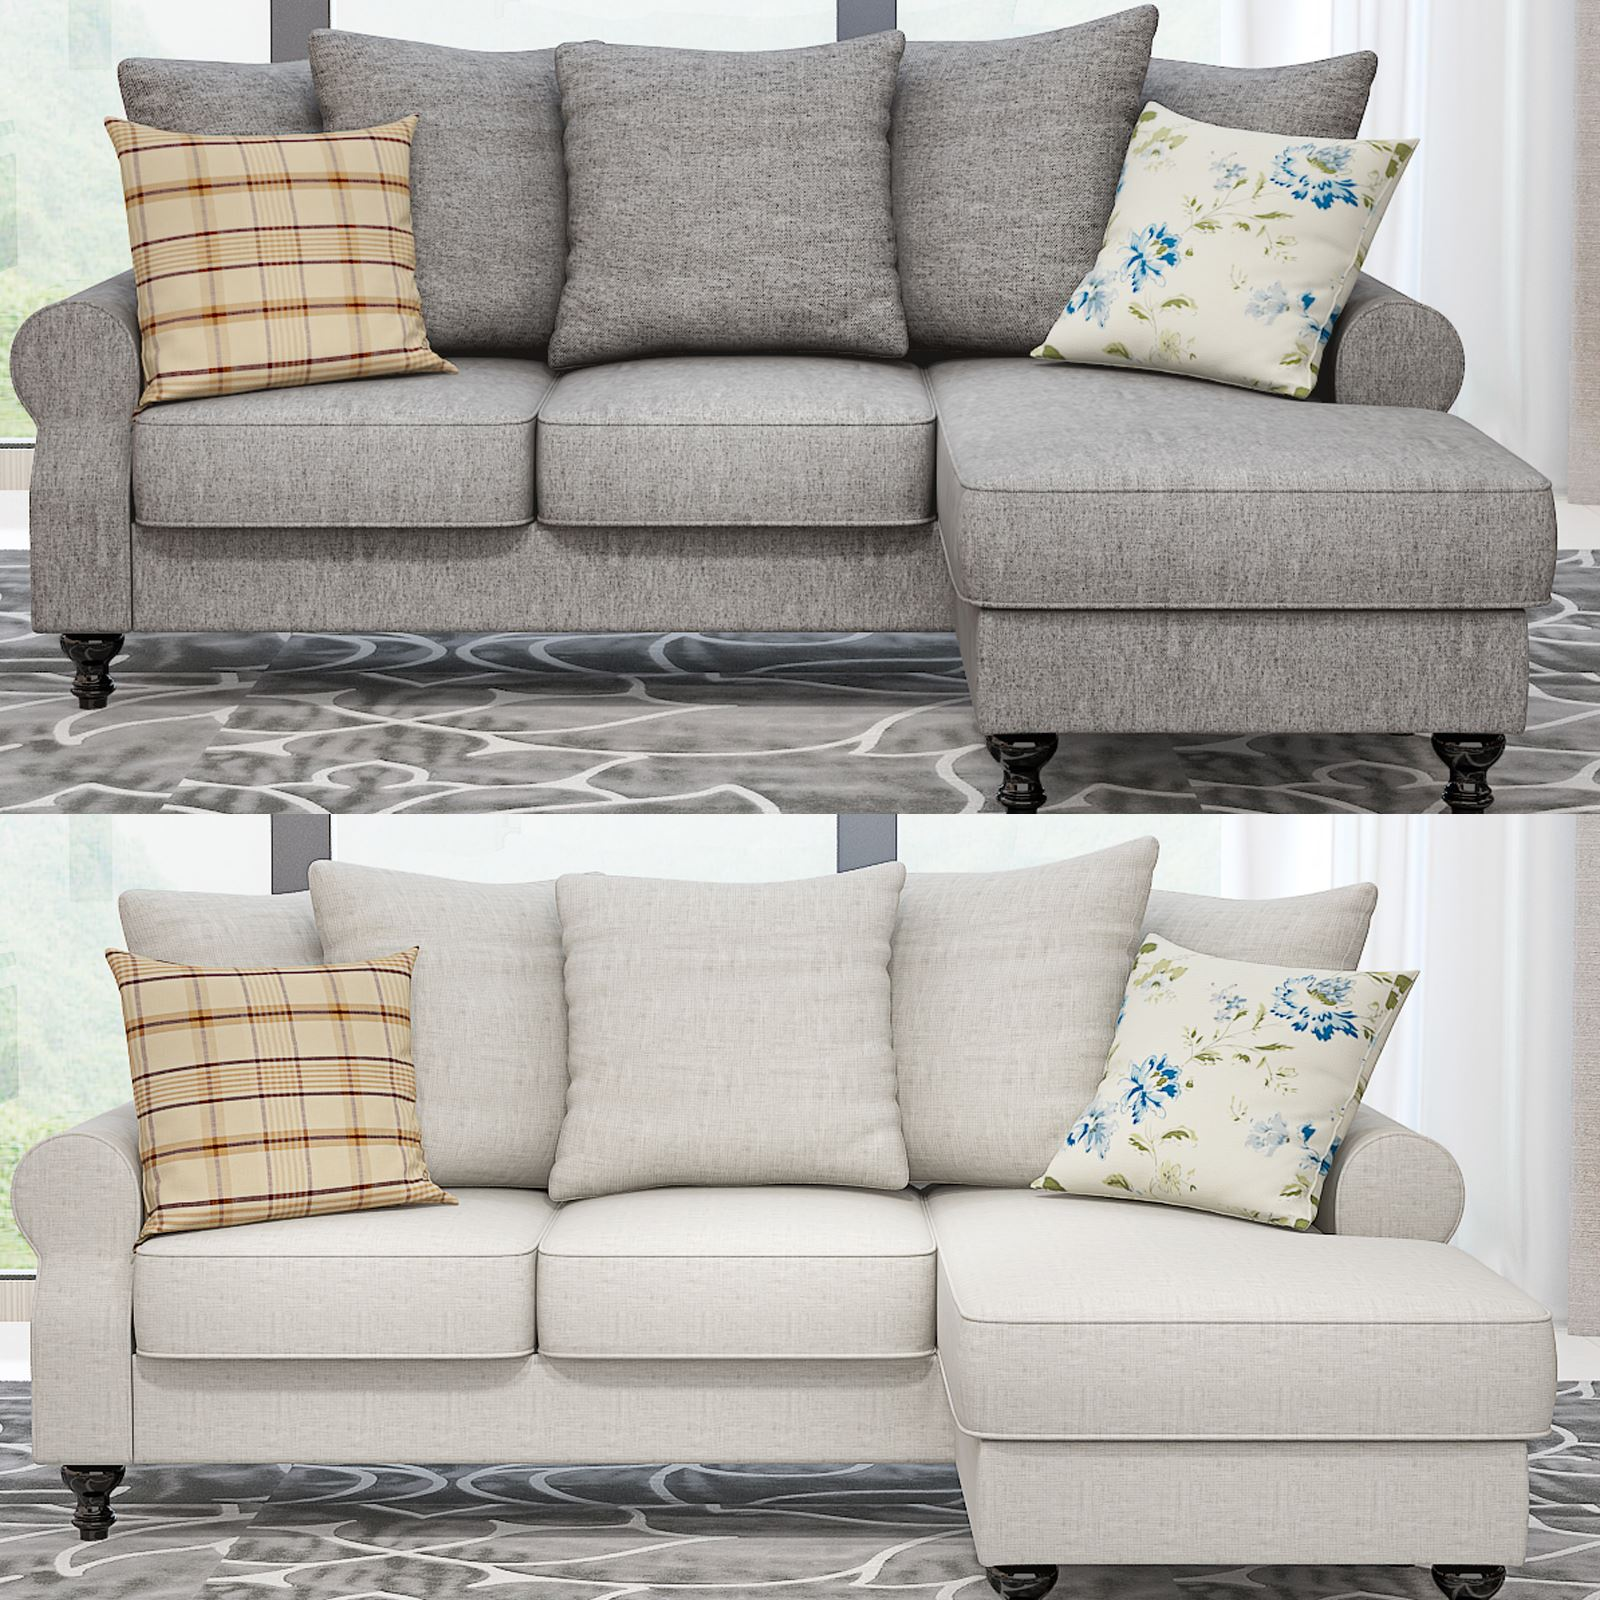 Panana Fabric Corner Sofa With Reversible Chaise Lounge Sofa Chair Washable Clothes + Pillows